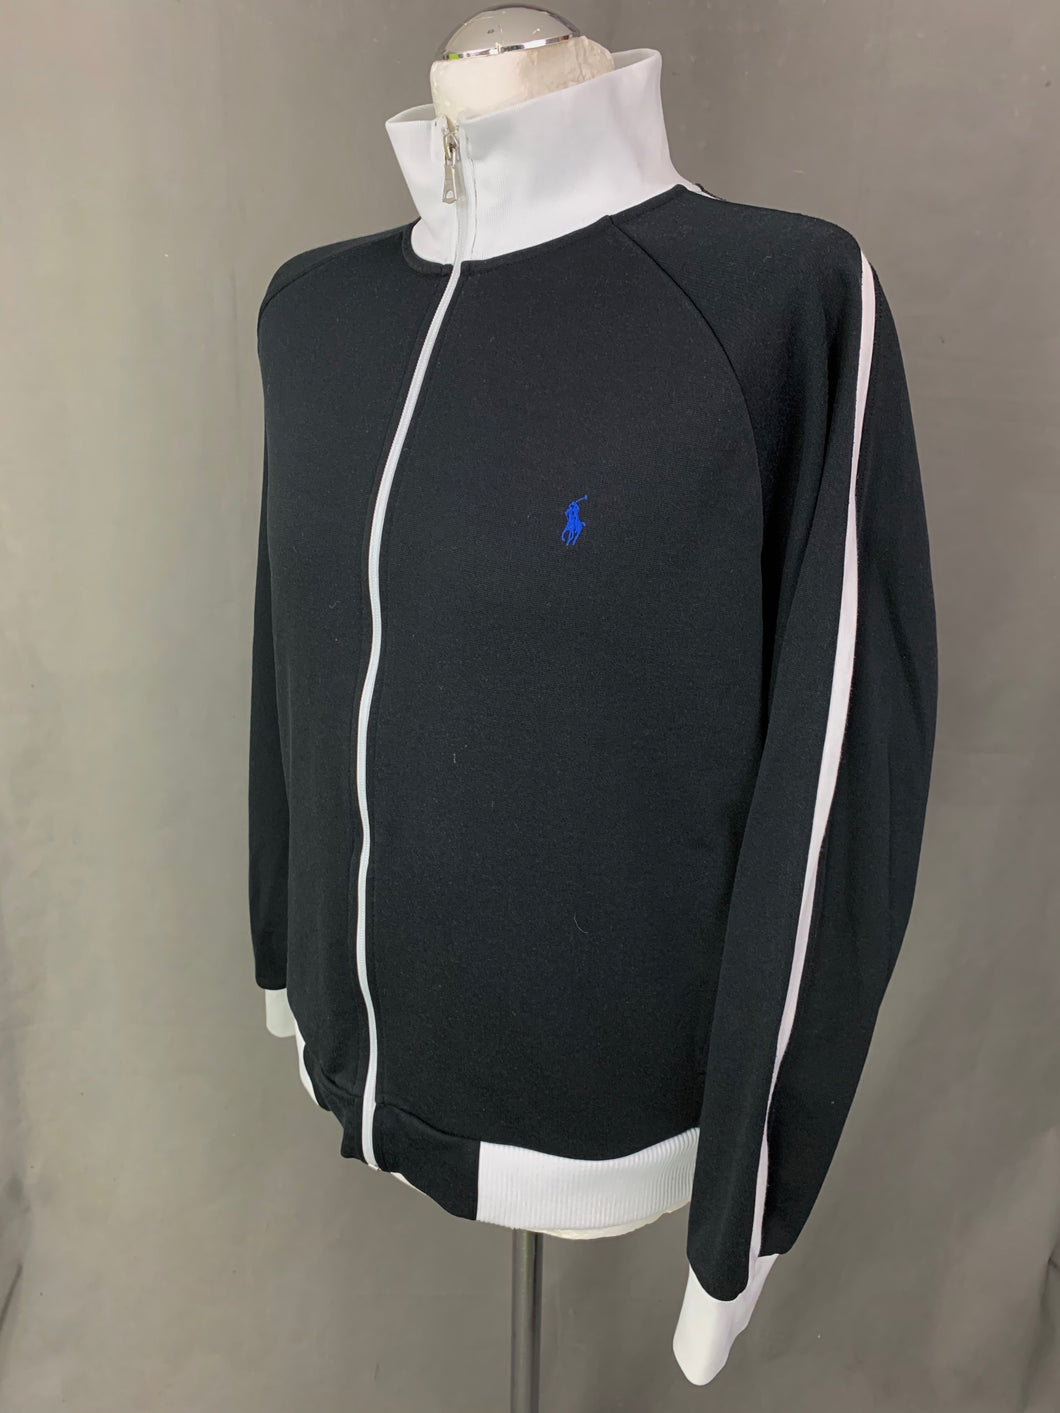 POLO by RALPH LAUREN Mens Black Softshell Jacket / Coat - Size Large L